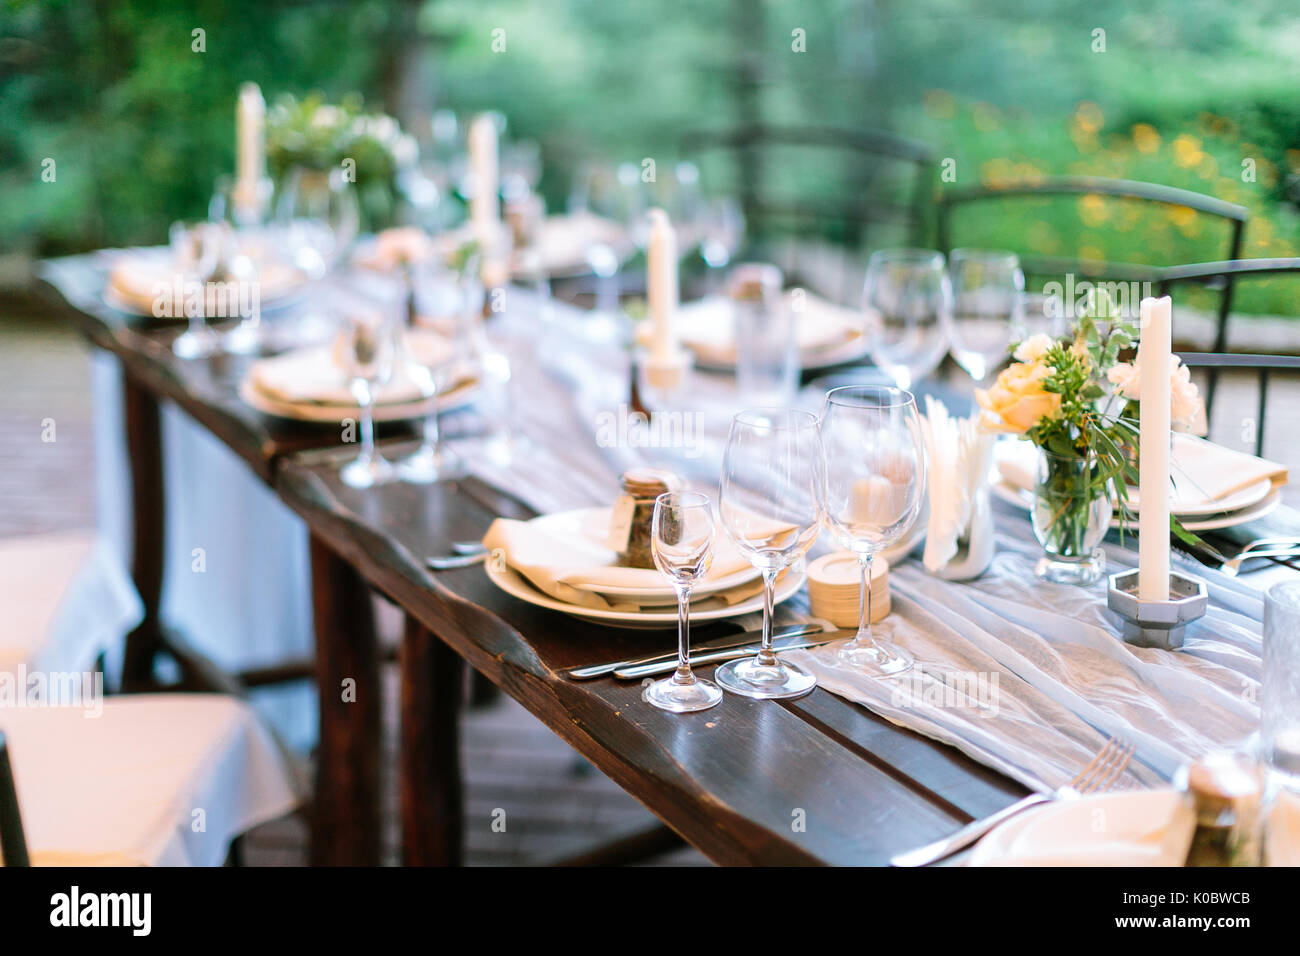 fest, dinner, tradition concept. long oaken table served for celebration with silverware, dishes and transparent dazzling glasses, flowers and candles in interesting holders in form of octagonal - Stock Image